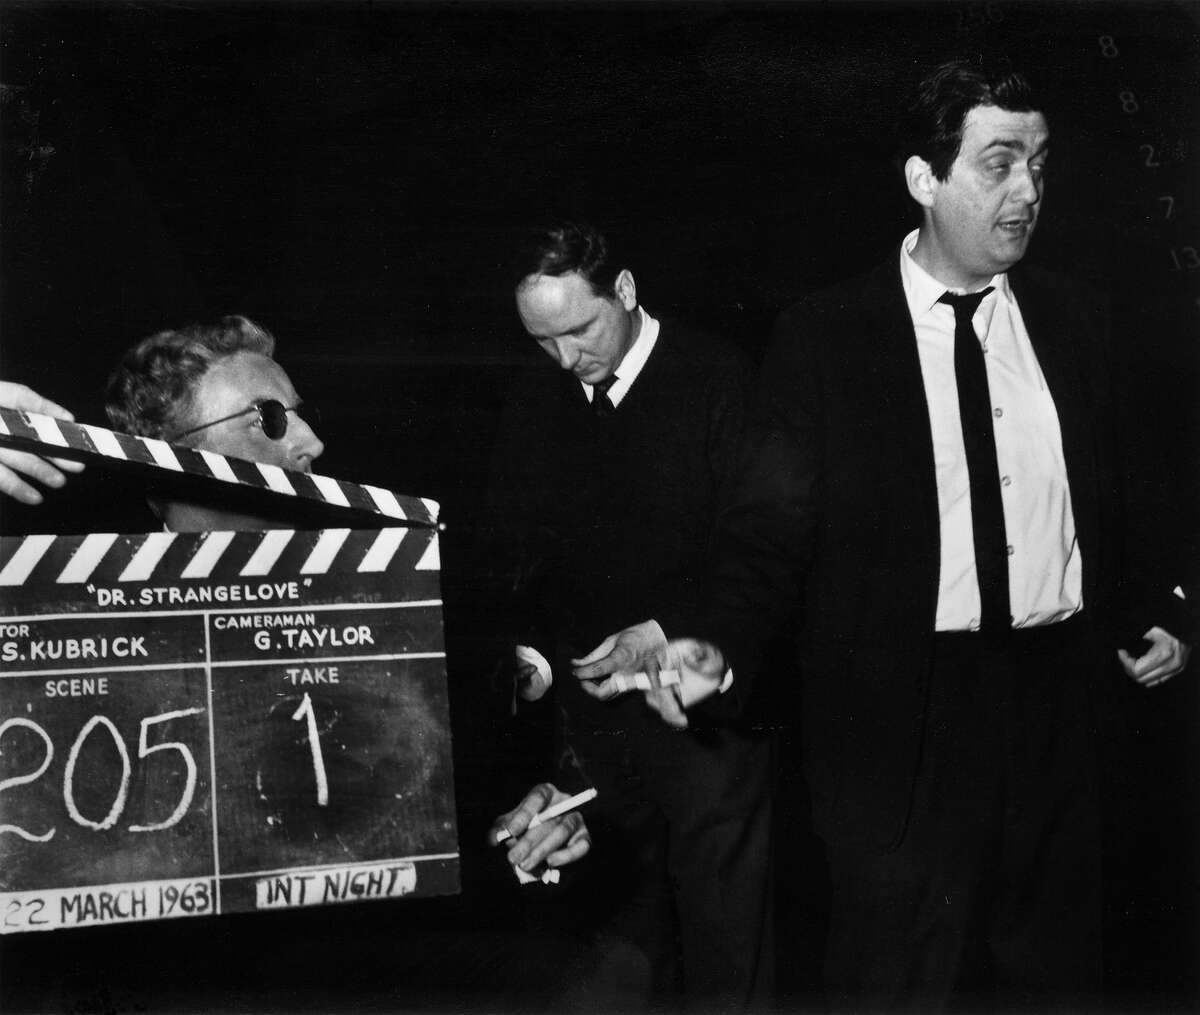 Peter Sellers, left, and director Stanley Kubrick, right, with a clapperboard during the filming of 'Dr Strangelove or How I Learned to Stop Worrying and Love the Bomb'.